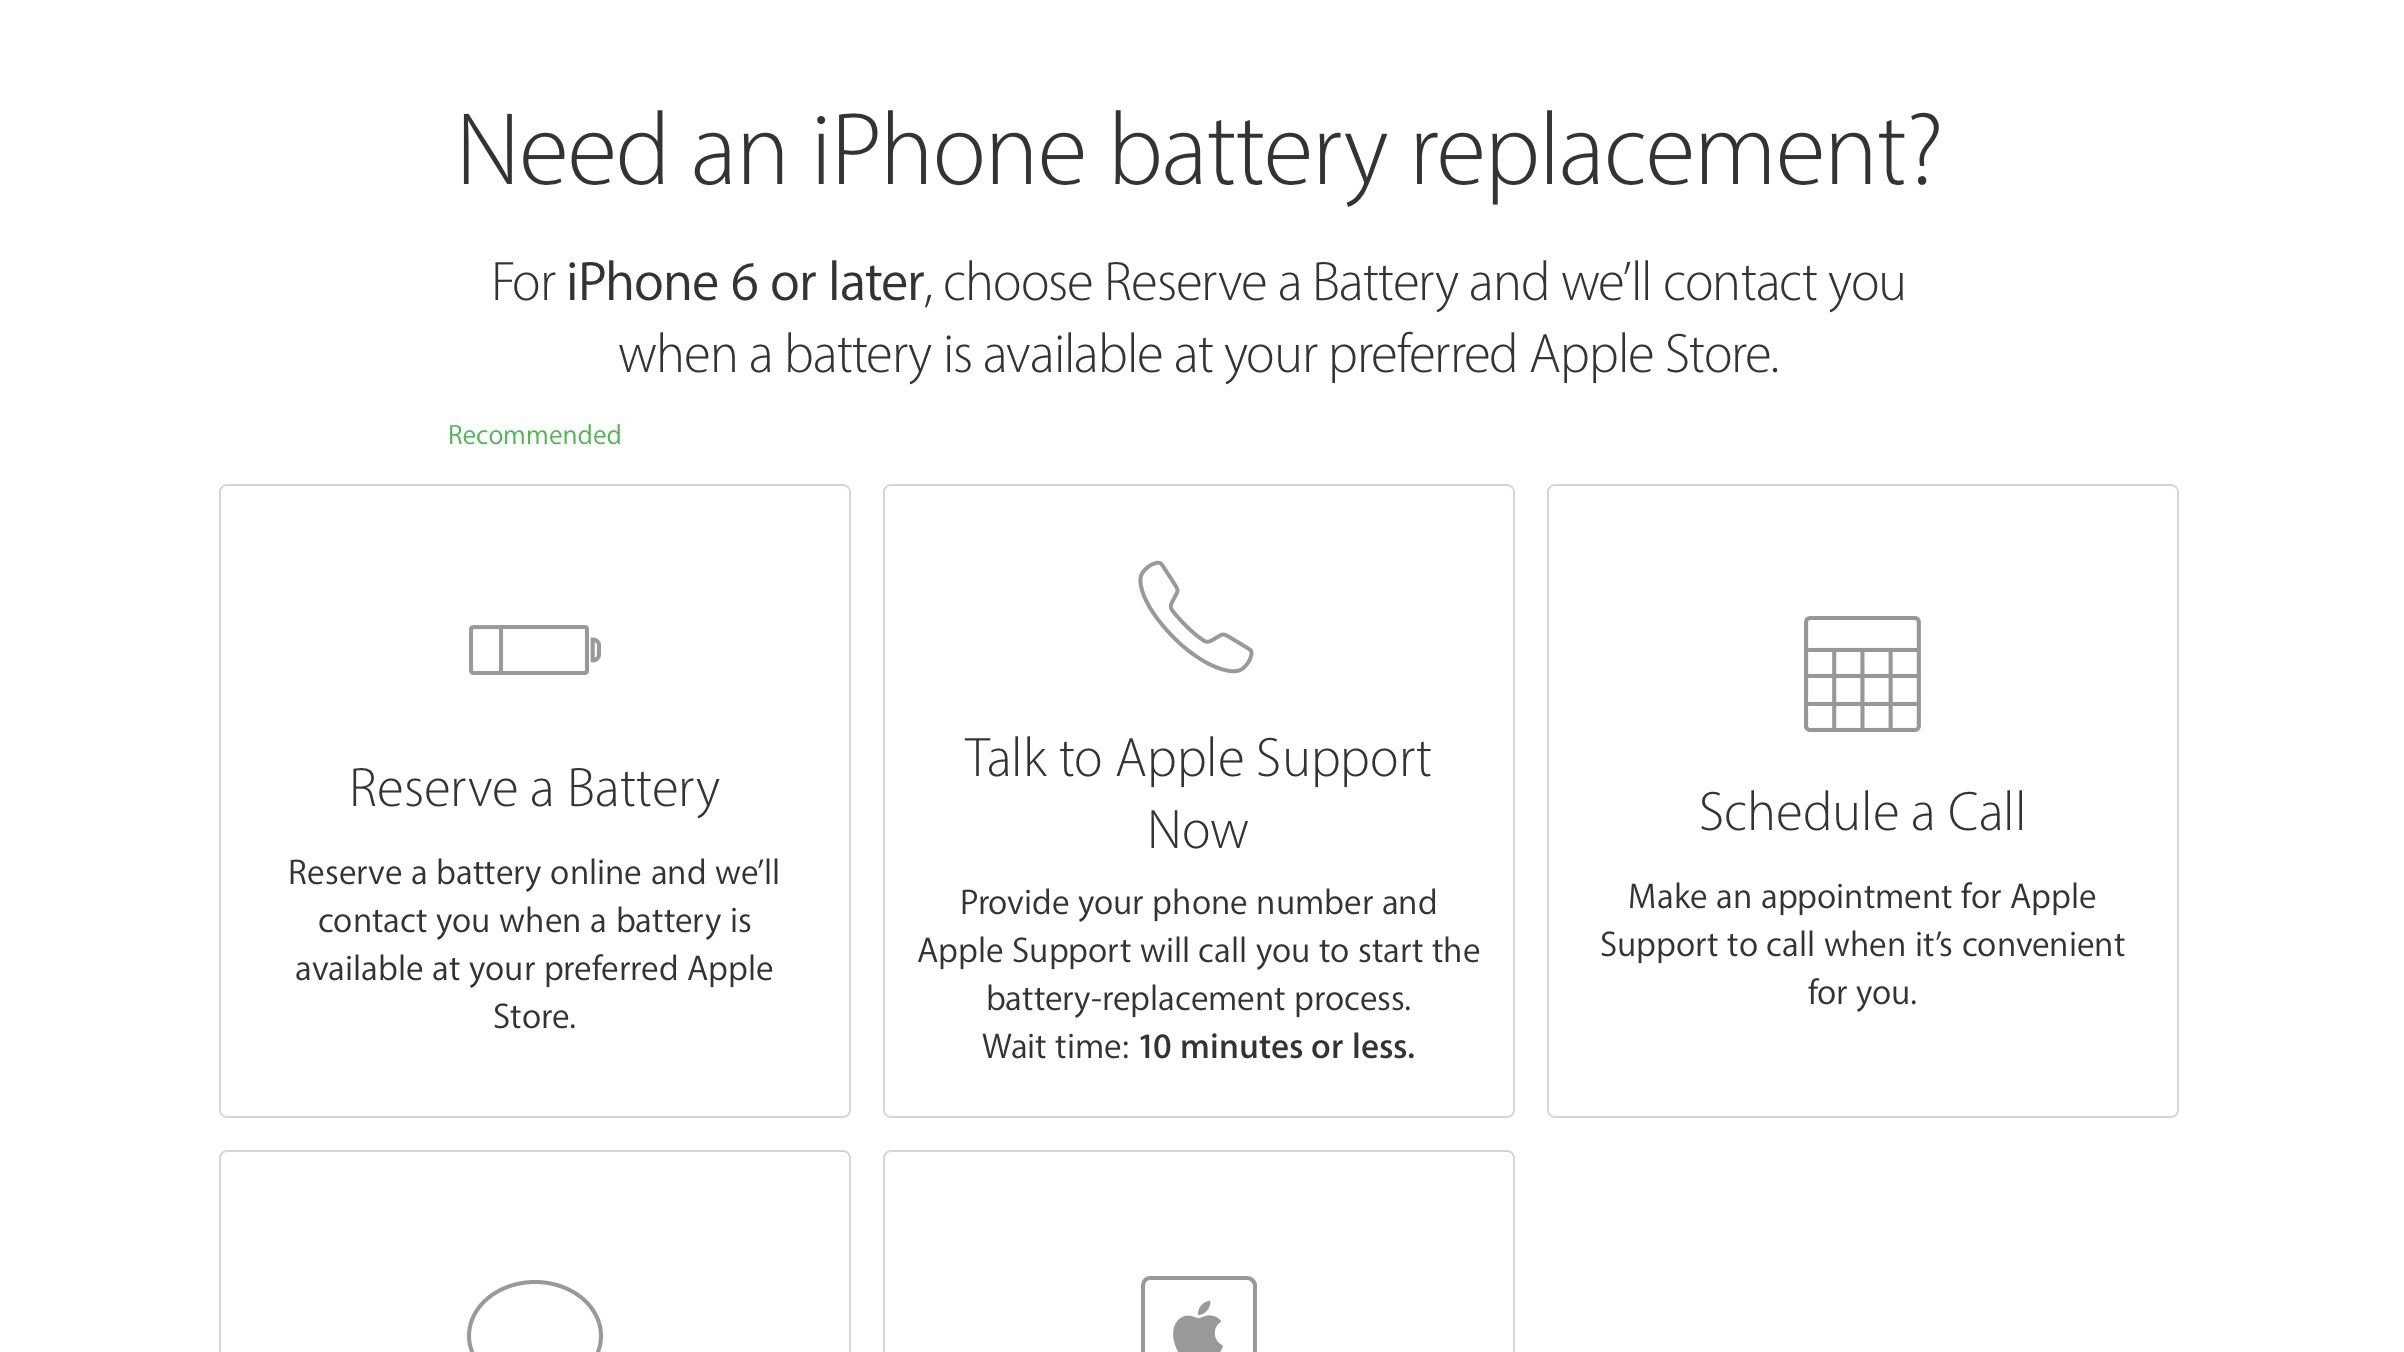 Apple offers online battery reservations in Canada, recommends